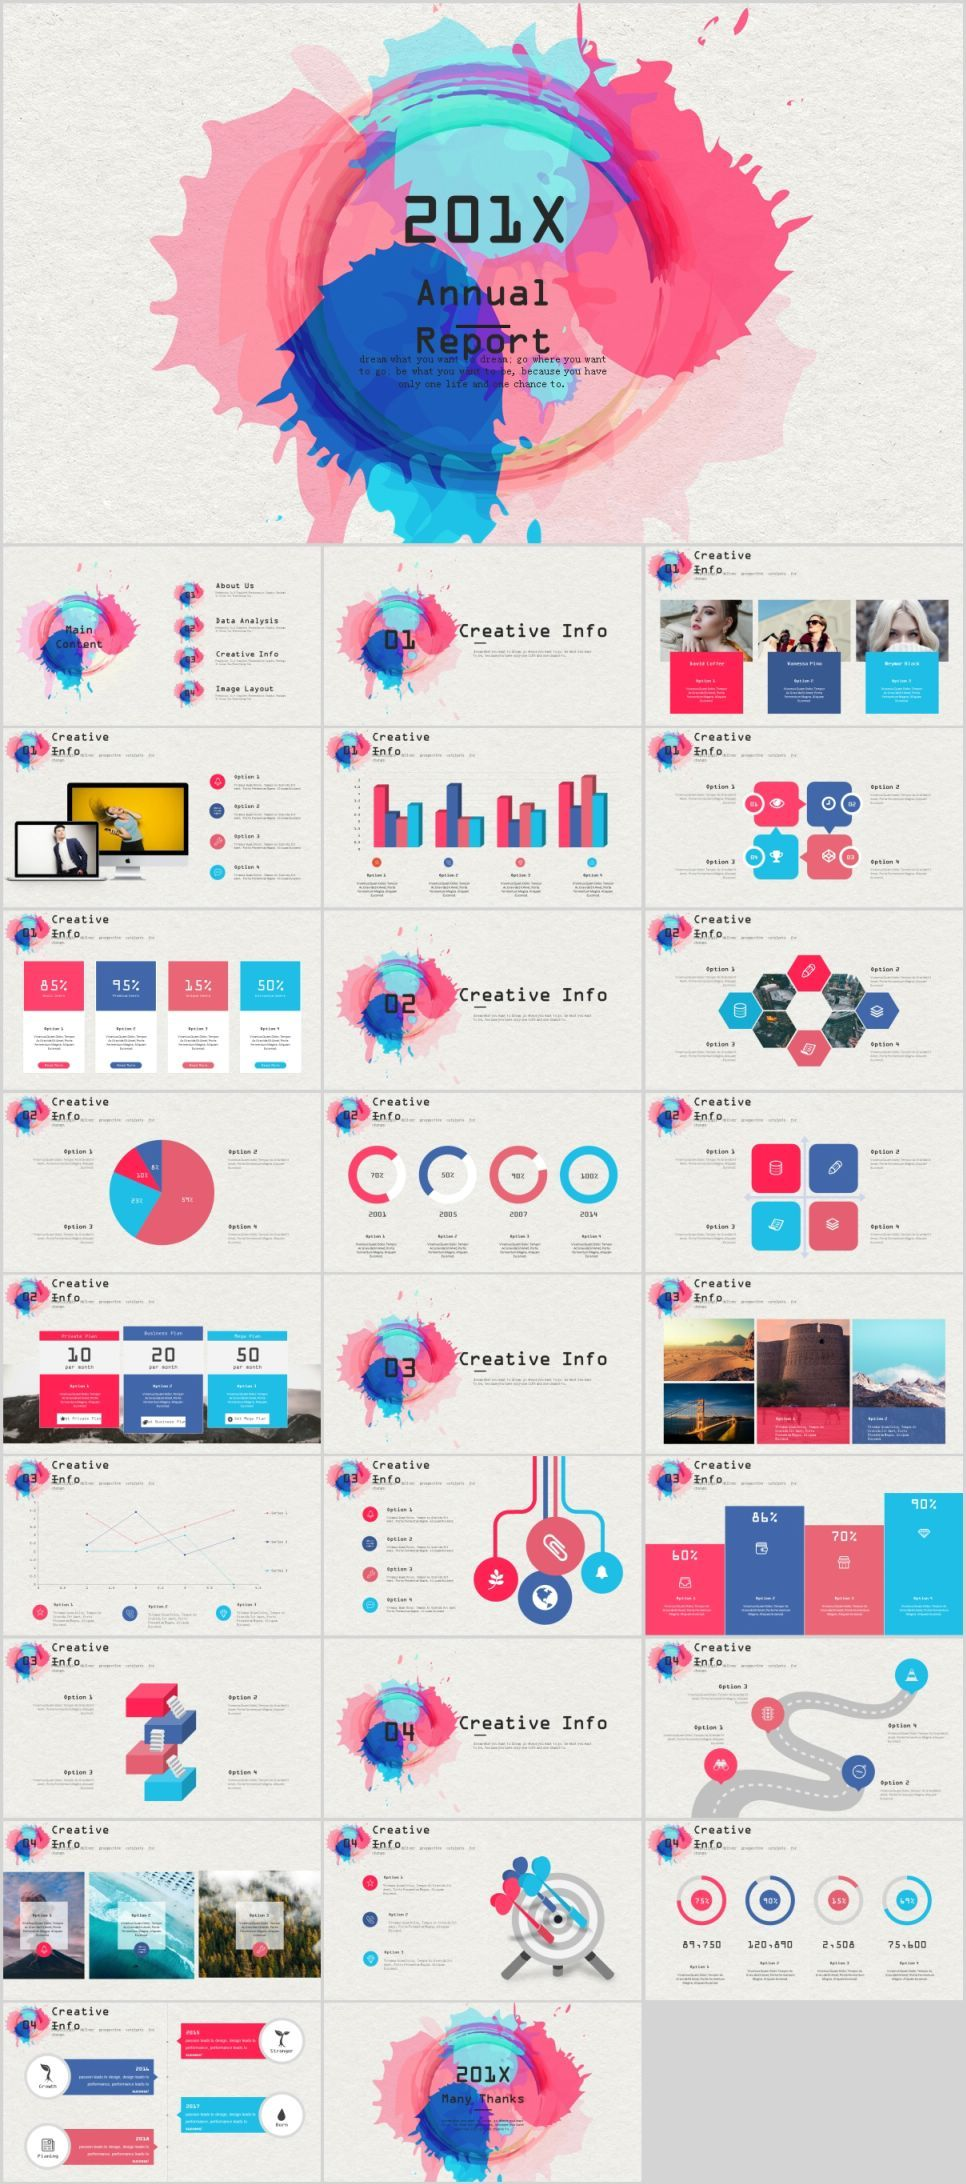 27 colorful annual report charts powerpoint template apresentao 27 colorful annual report charts powerpoint template powerpoint templates presentation animation toneelgroepblik Choice Image